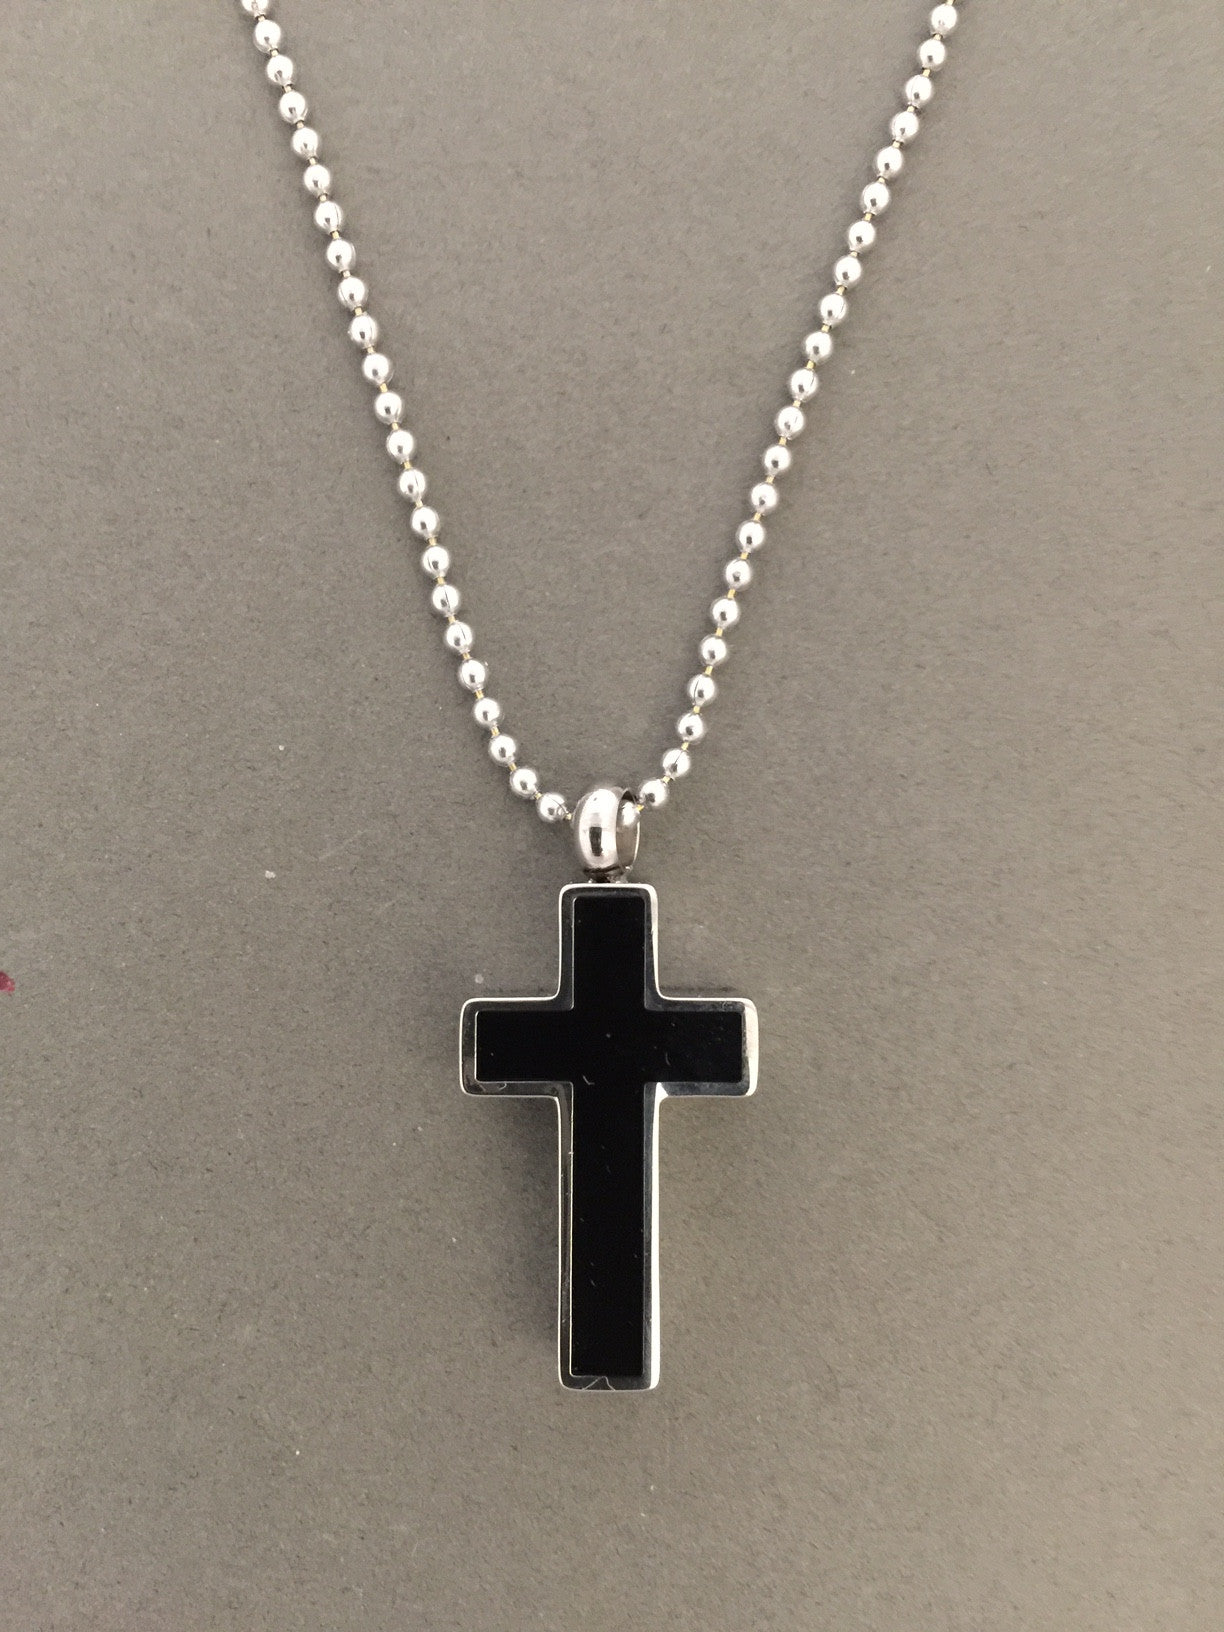 Black Memorial Ashes Urn Cross Necklace Pendant w/ Chain